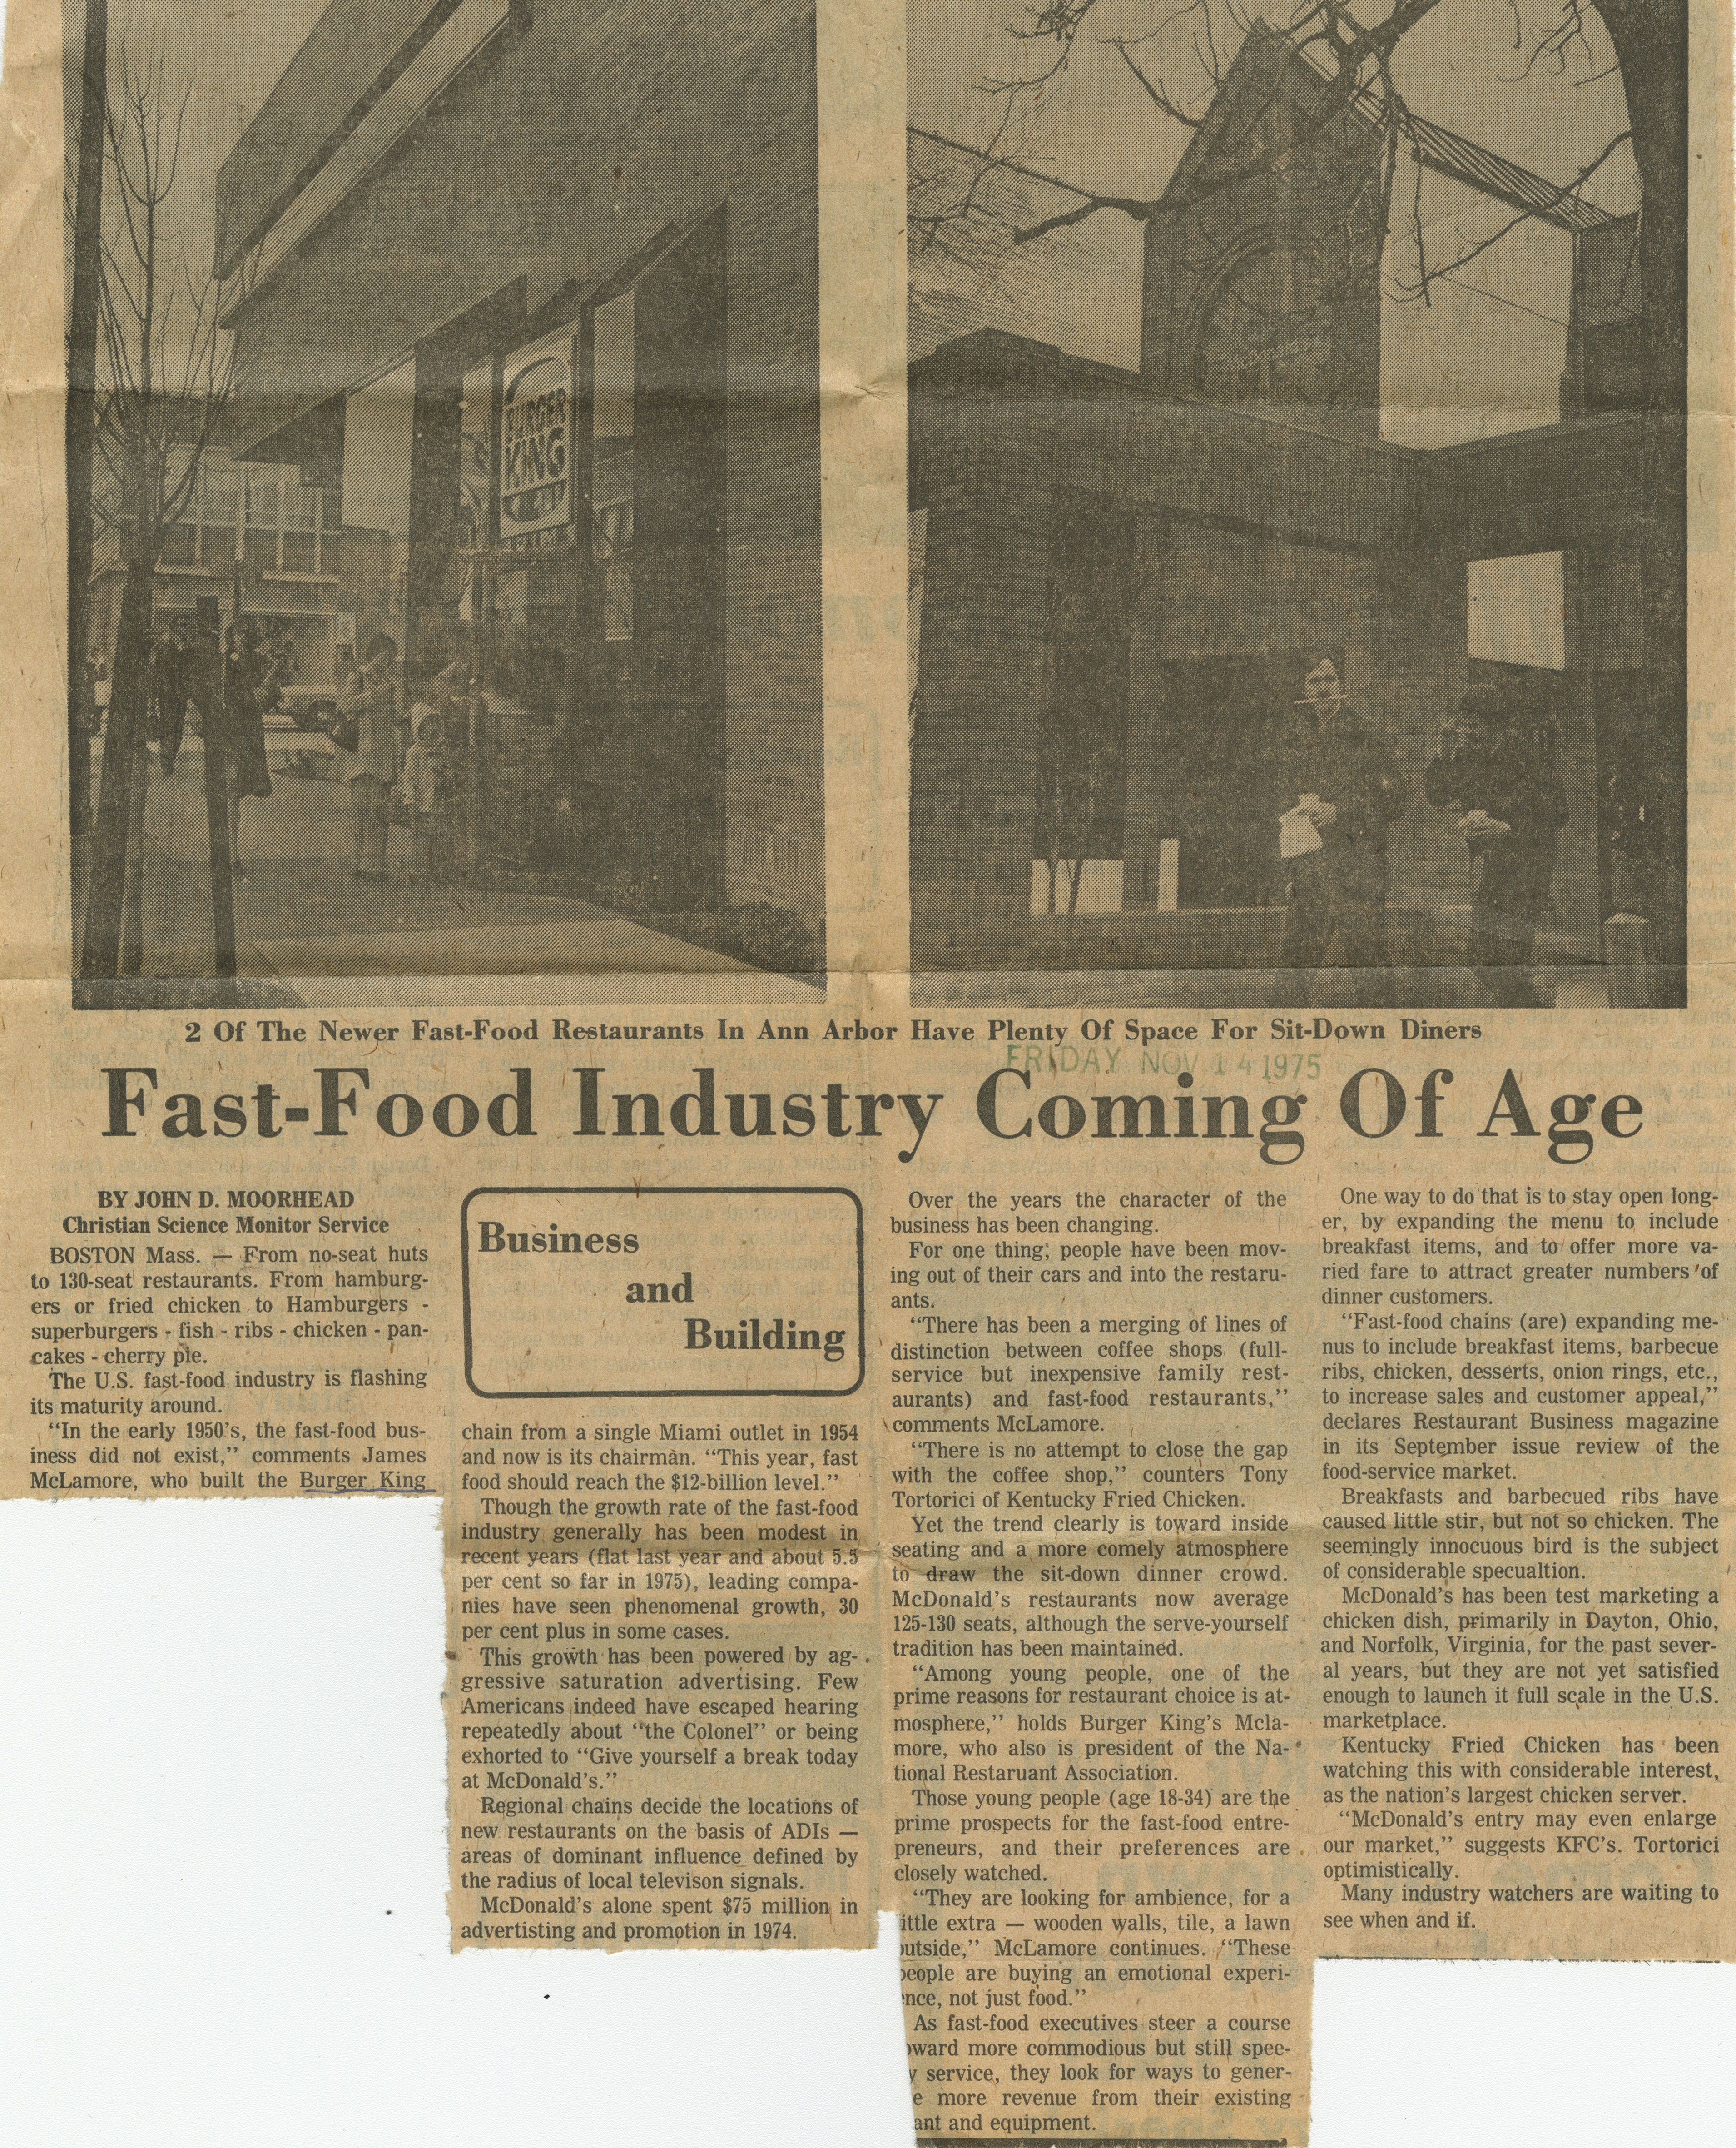 Fast-Food Industry Coming Of Age image